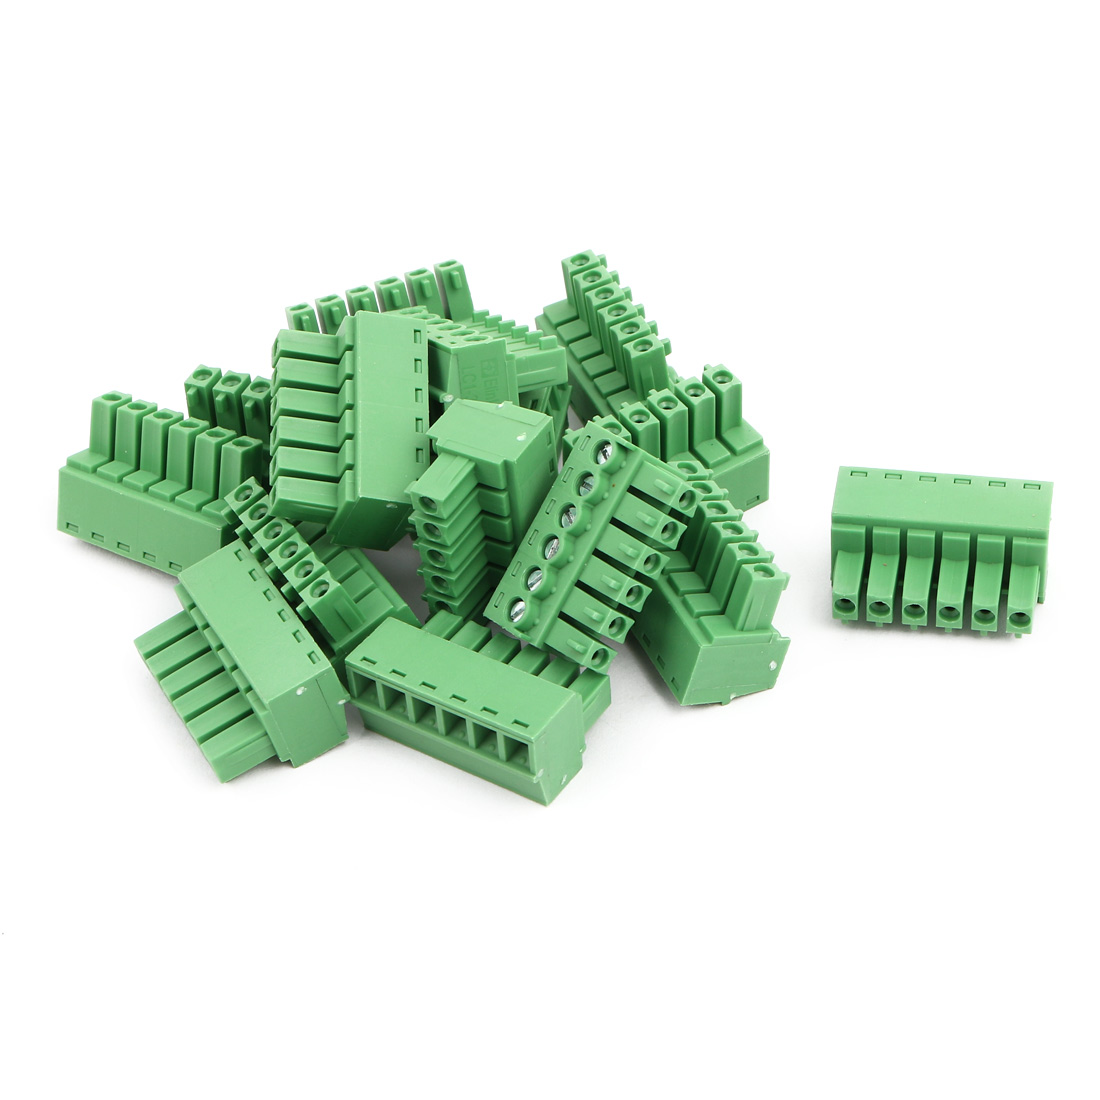 15Pcs AC300V 8A 3.81mm Pitch 6P Terminal Block Wire Connection for PCB Mounting